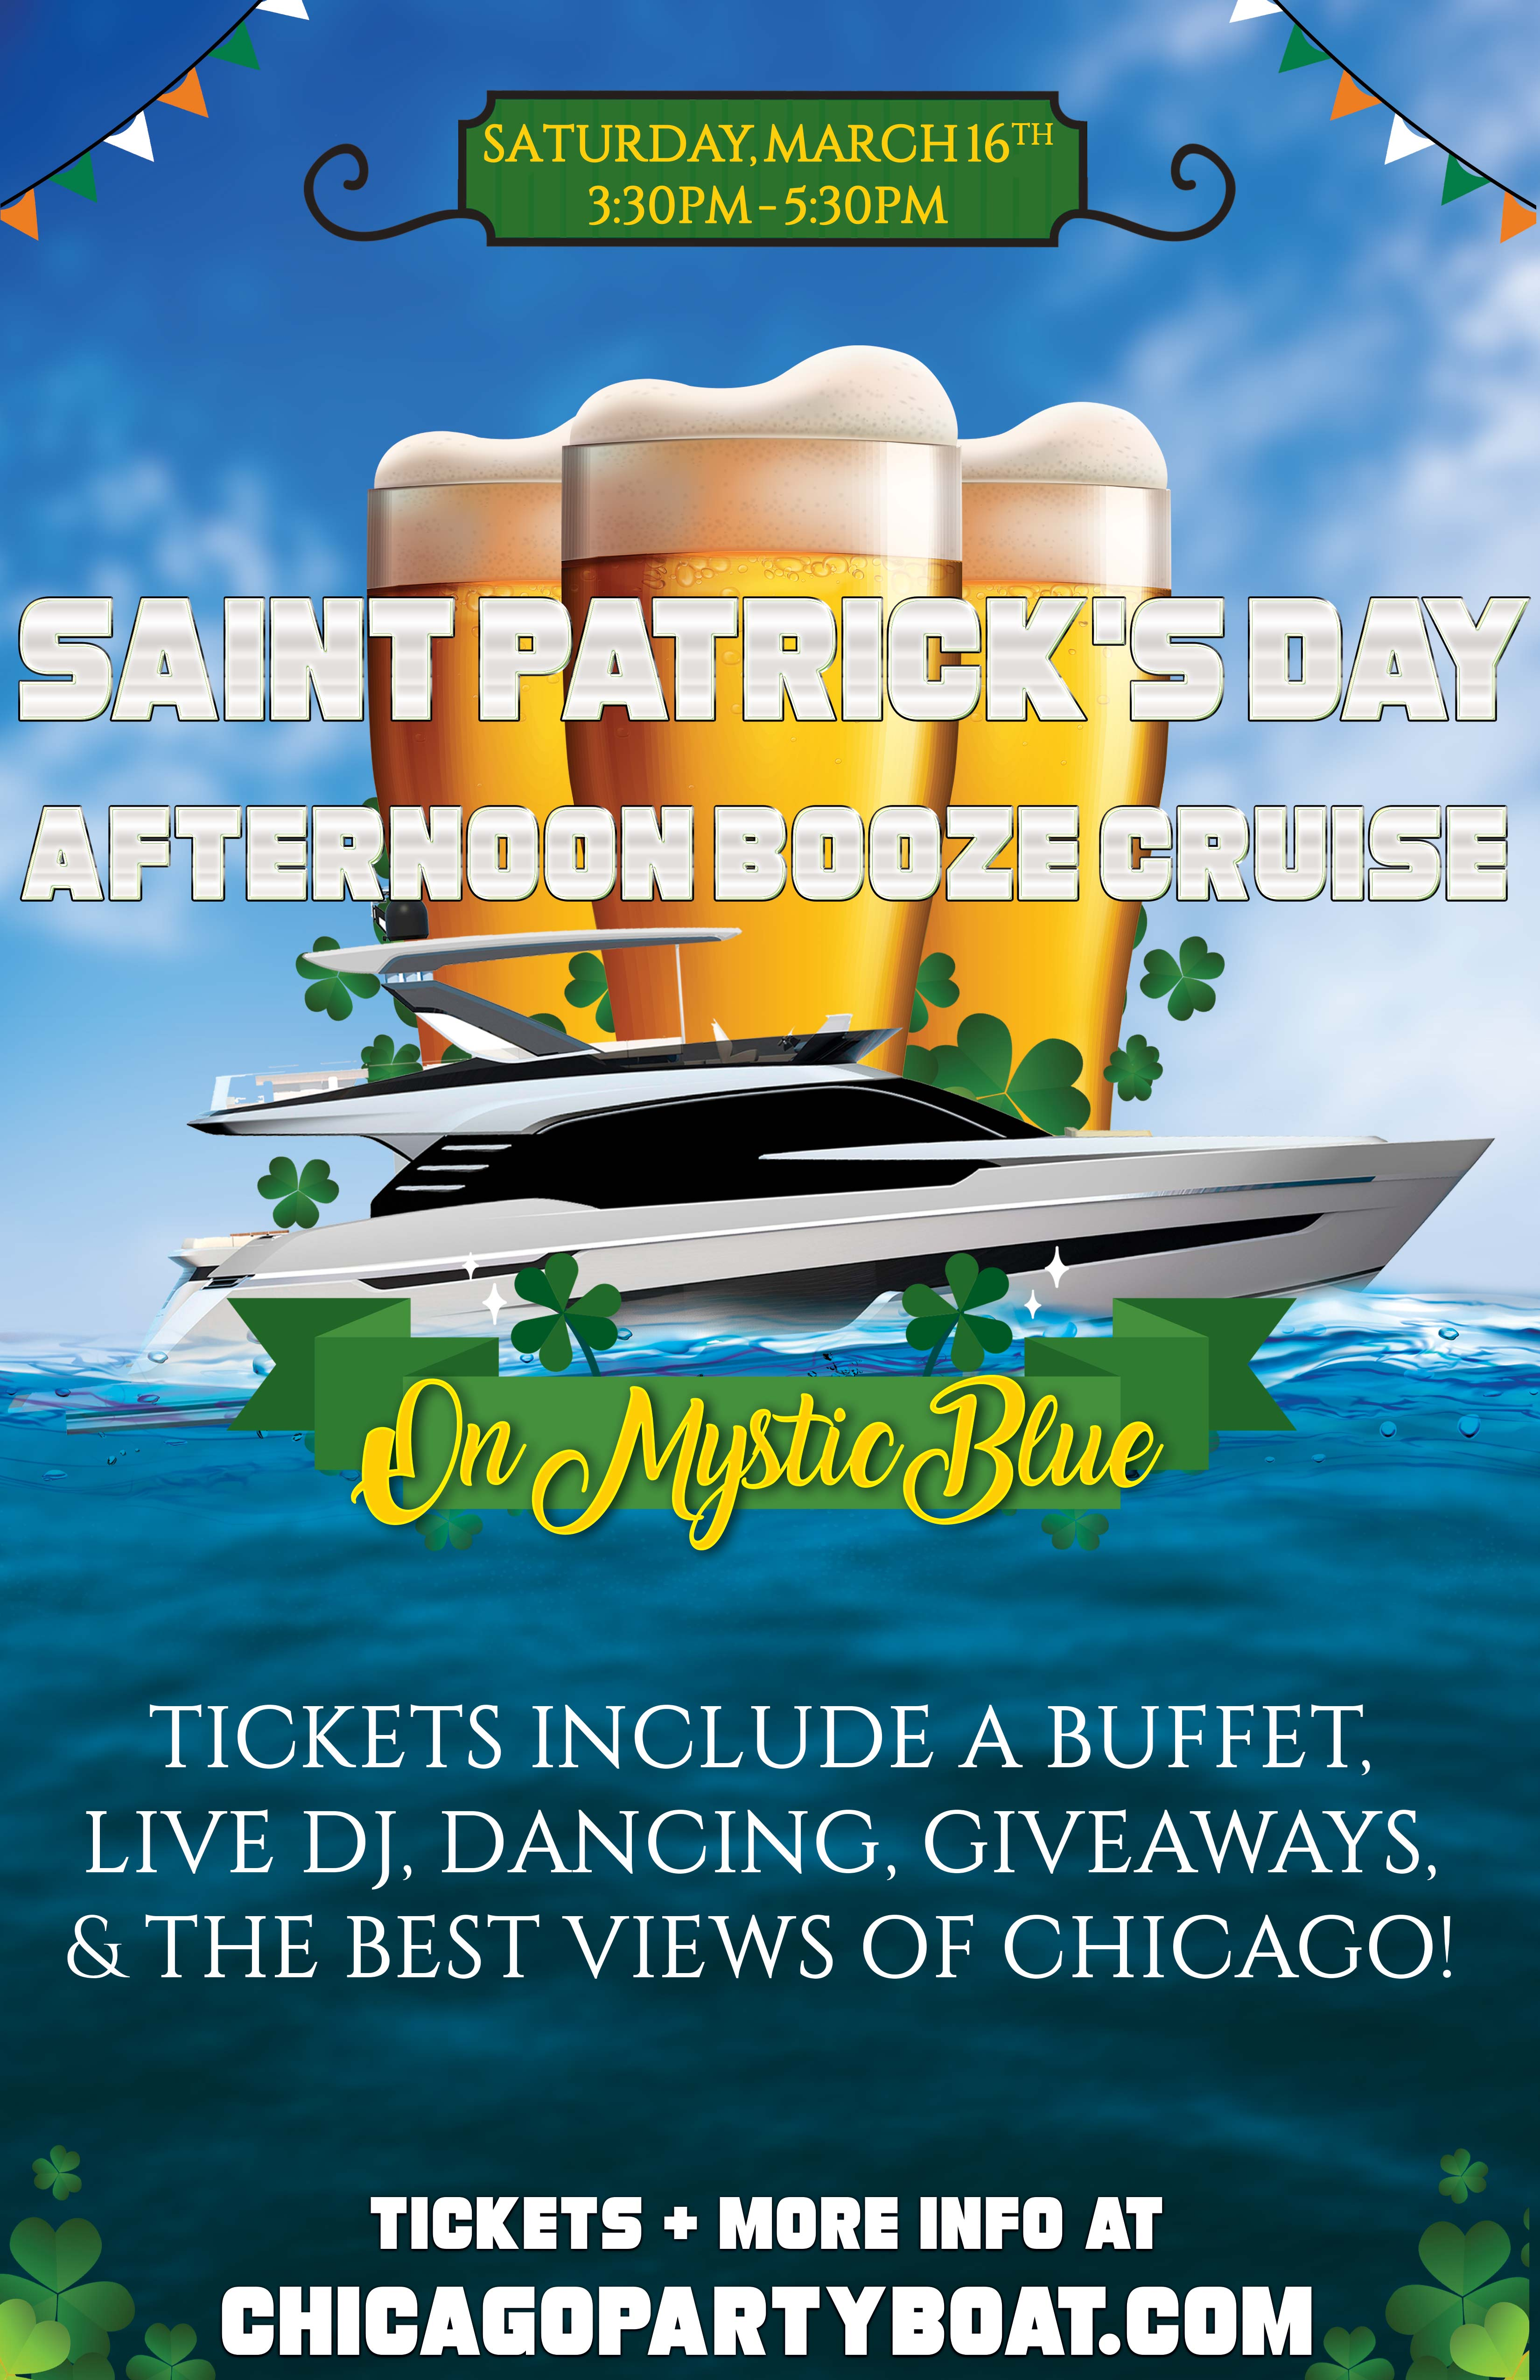 St. Patrick's Day Afternoon Booze Cruise Party on Mystic Blue - Tickets include a Buffet, Live DJ, Dancing, Giveaways, and the best views of Chicago!